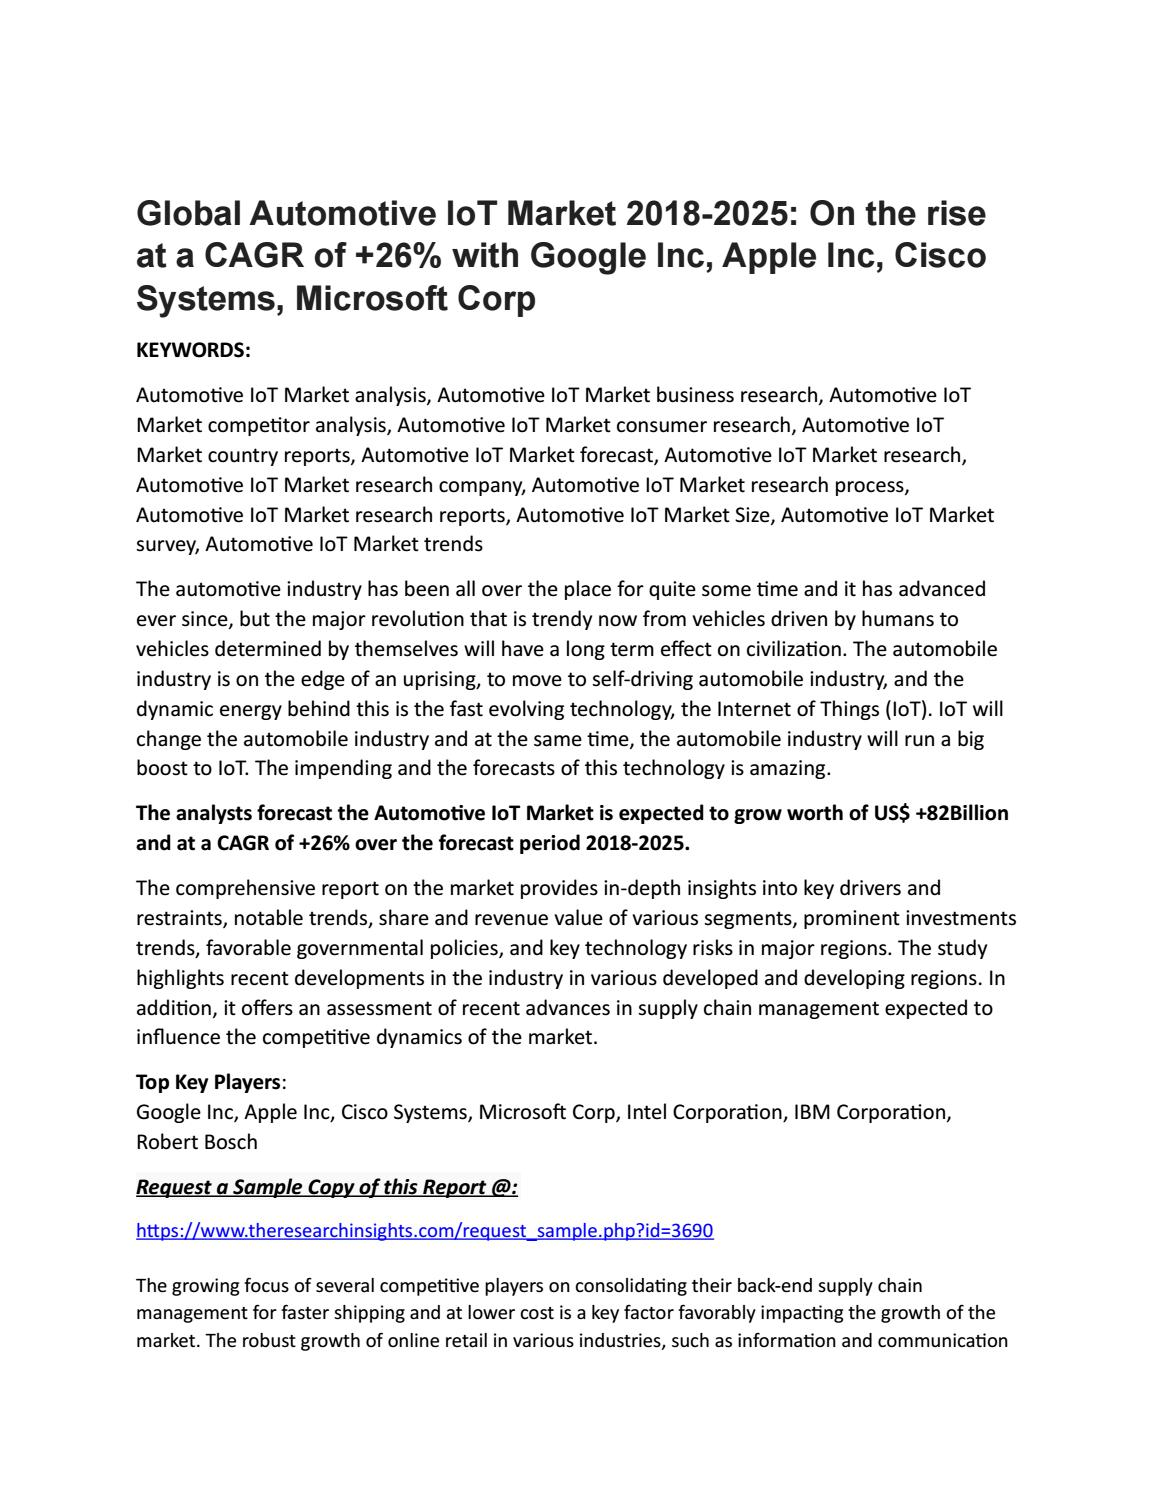 Global Automotive IoT Market 2018-2025: On the rise at a